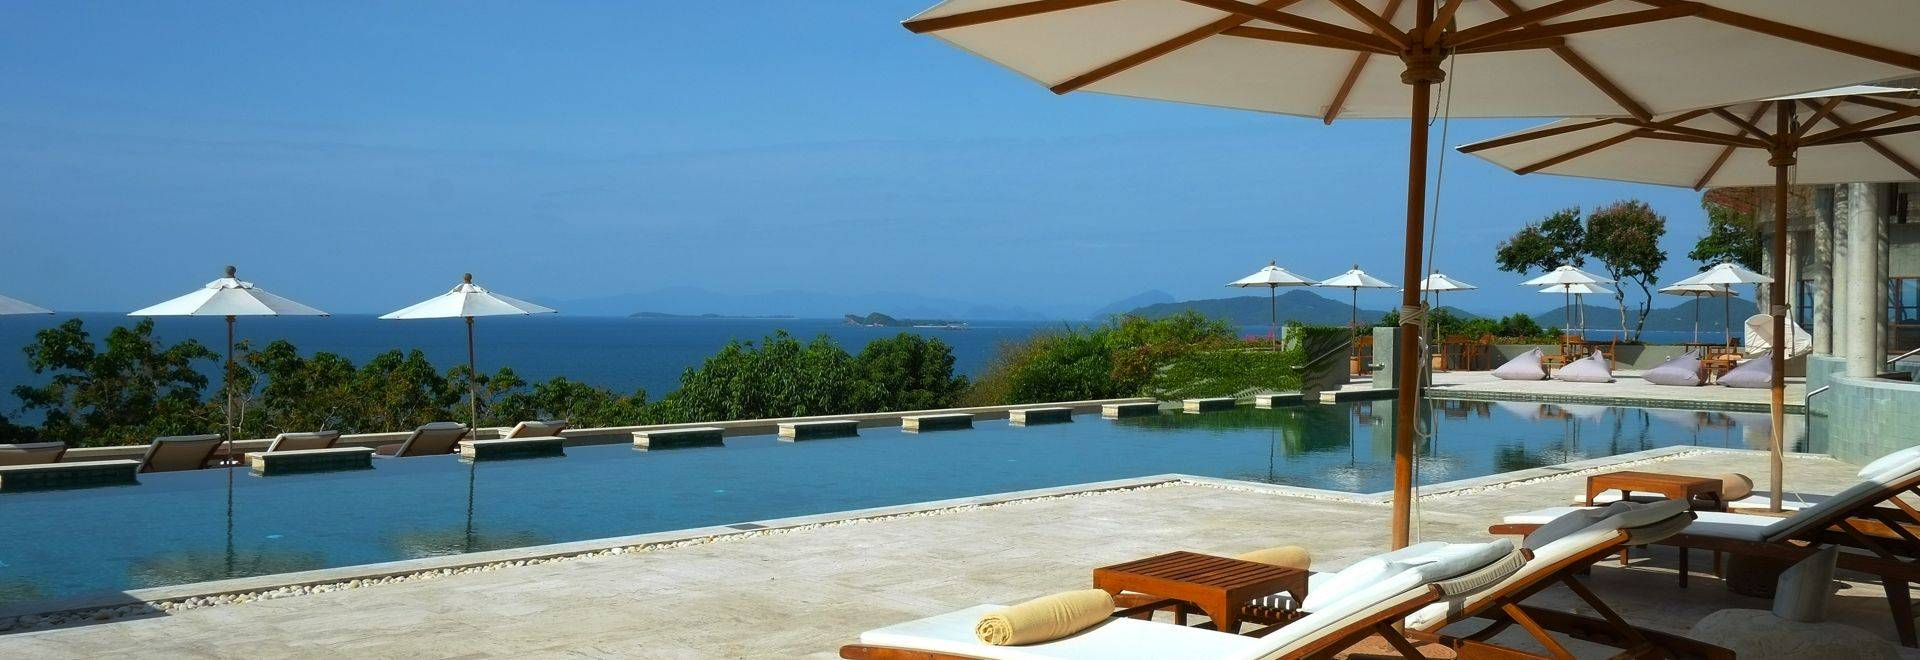 Kamalaya-sun-beds-lap-pool.jpg